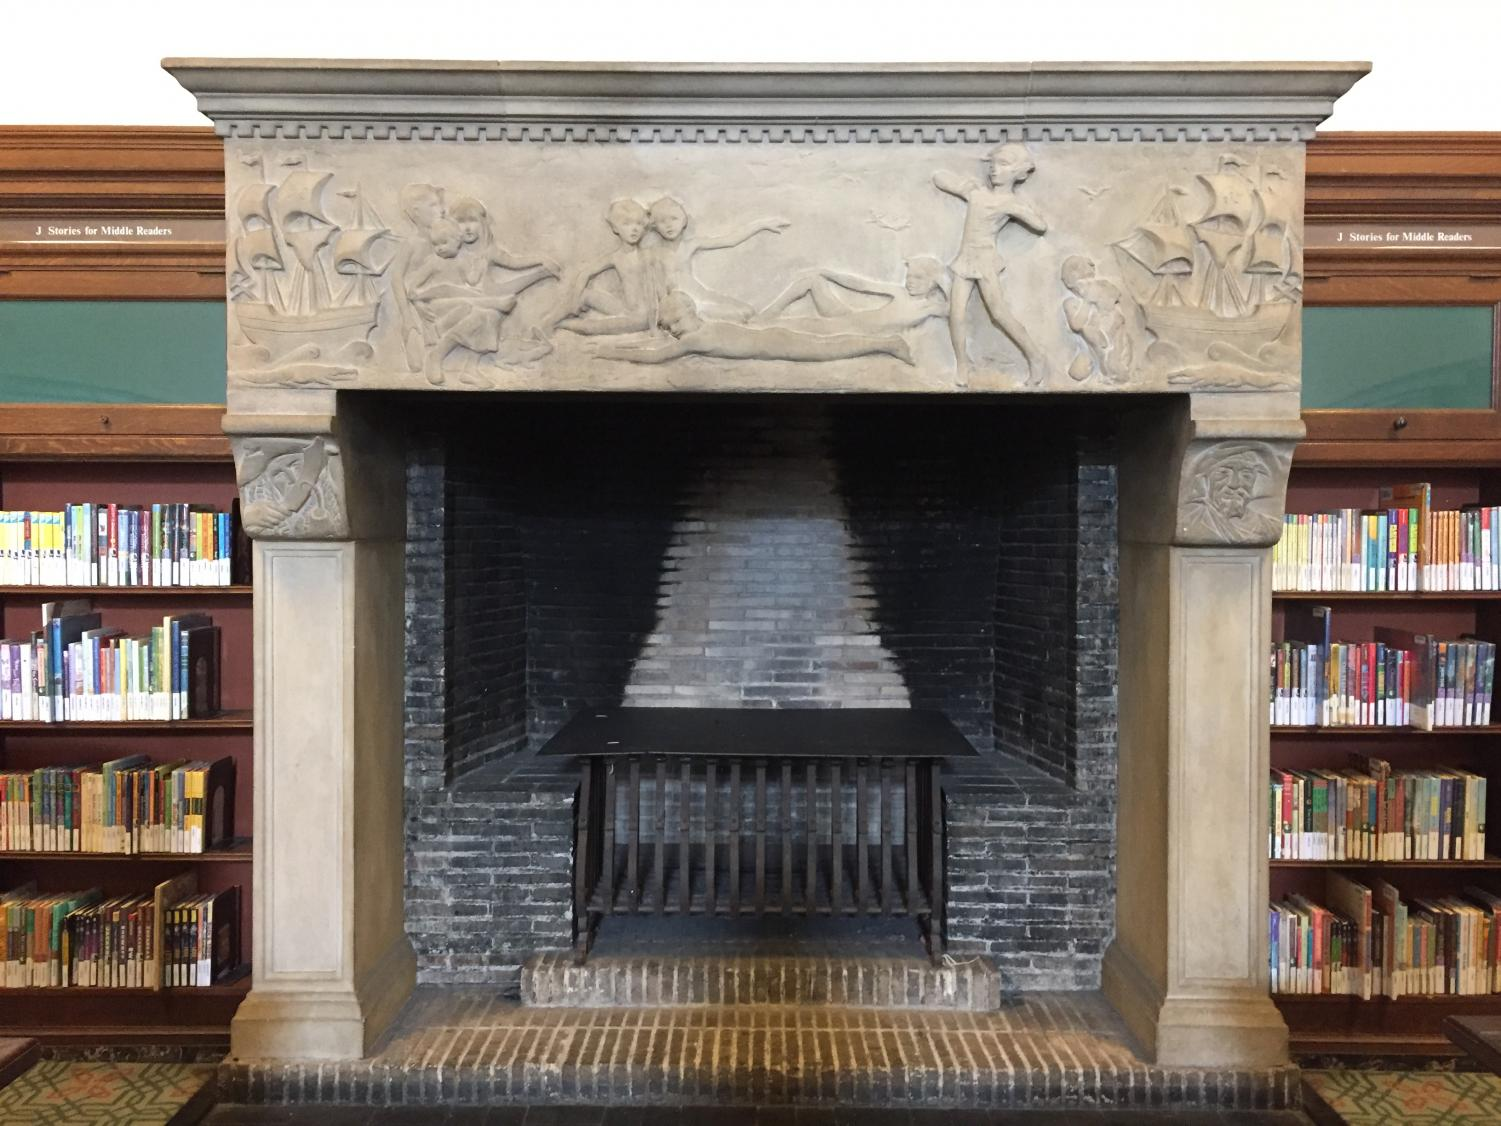 The Peter Pan inspired fireplace provides a welcoming and cozy entrance to the Children's Wing.